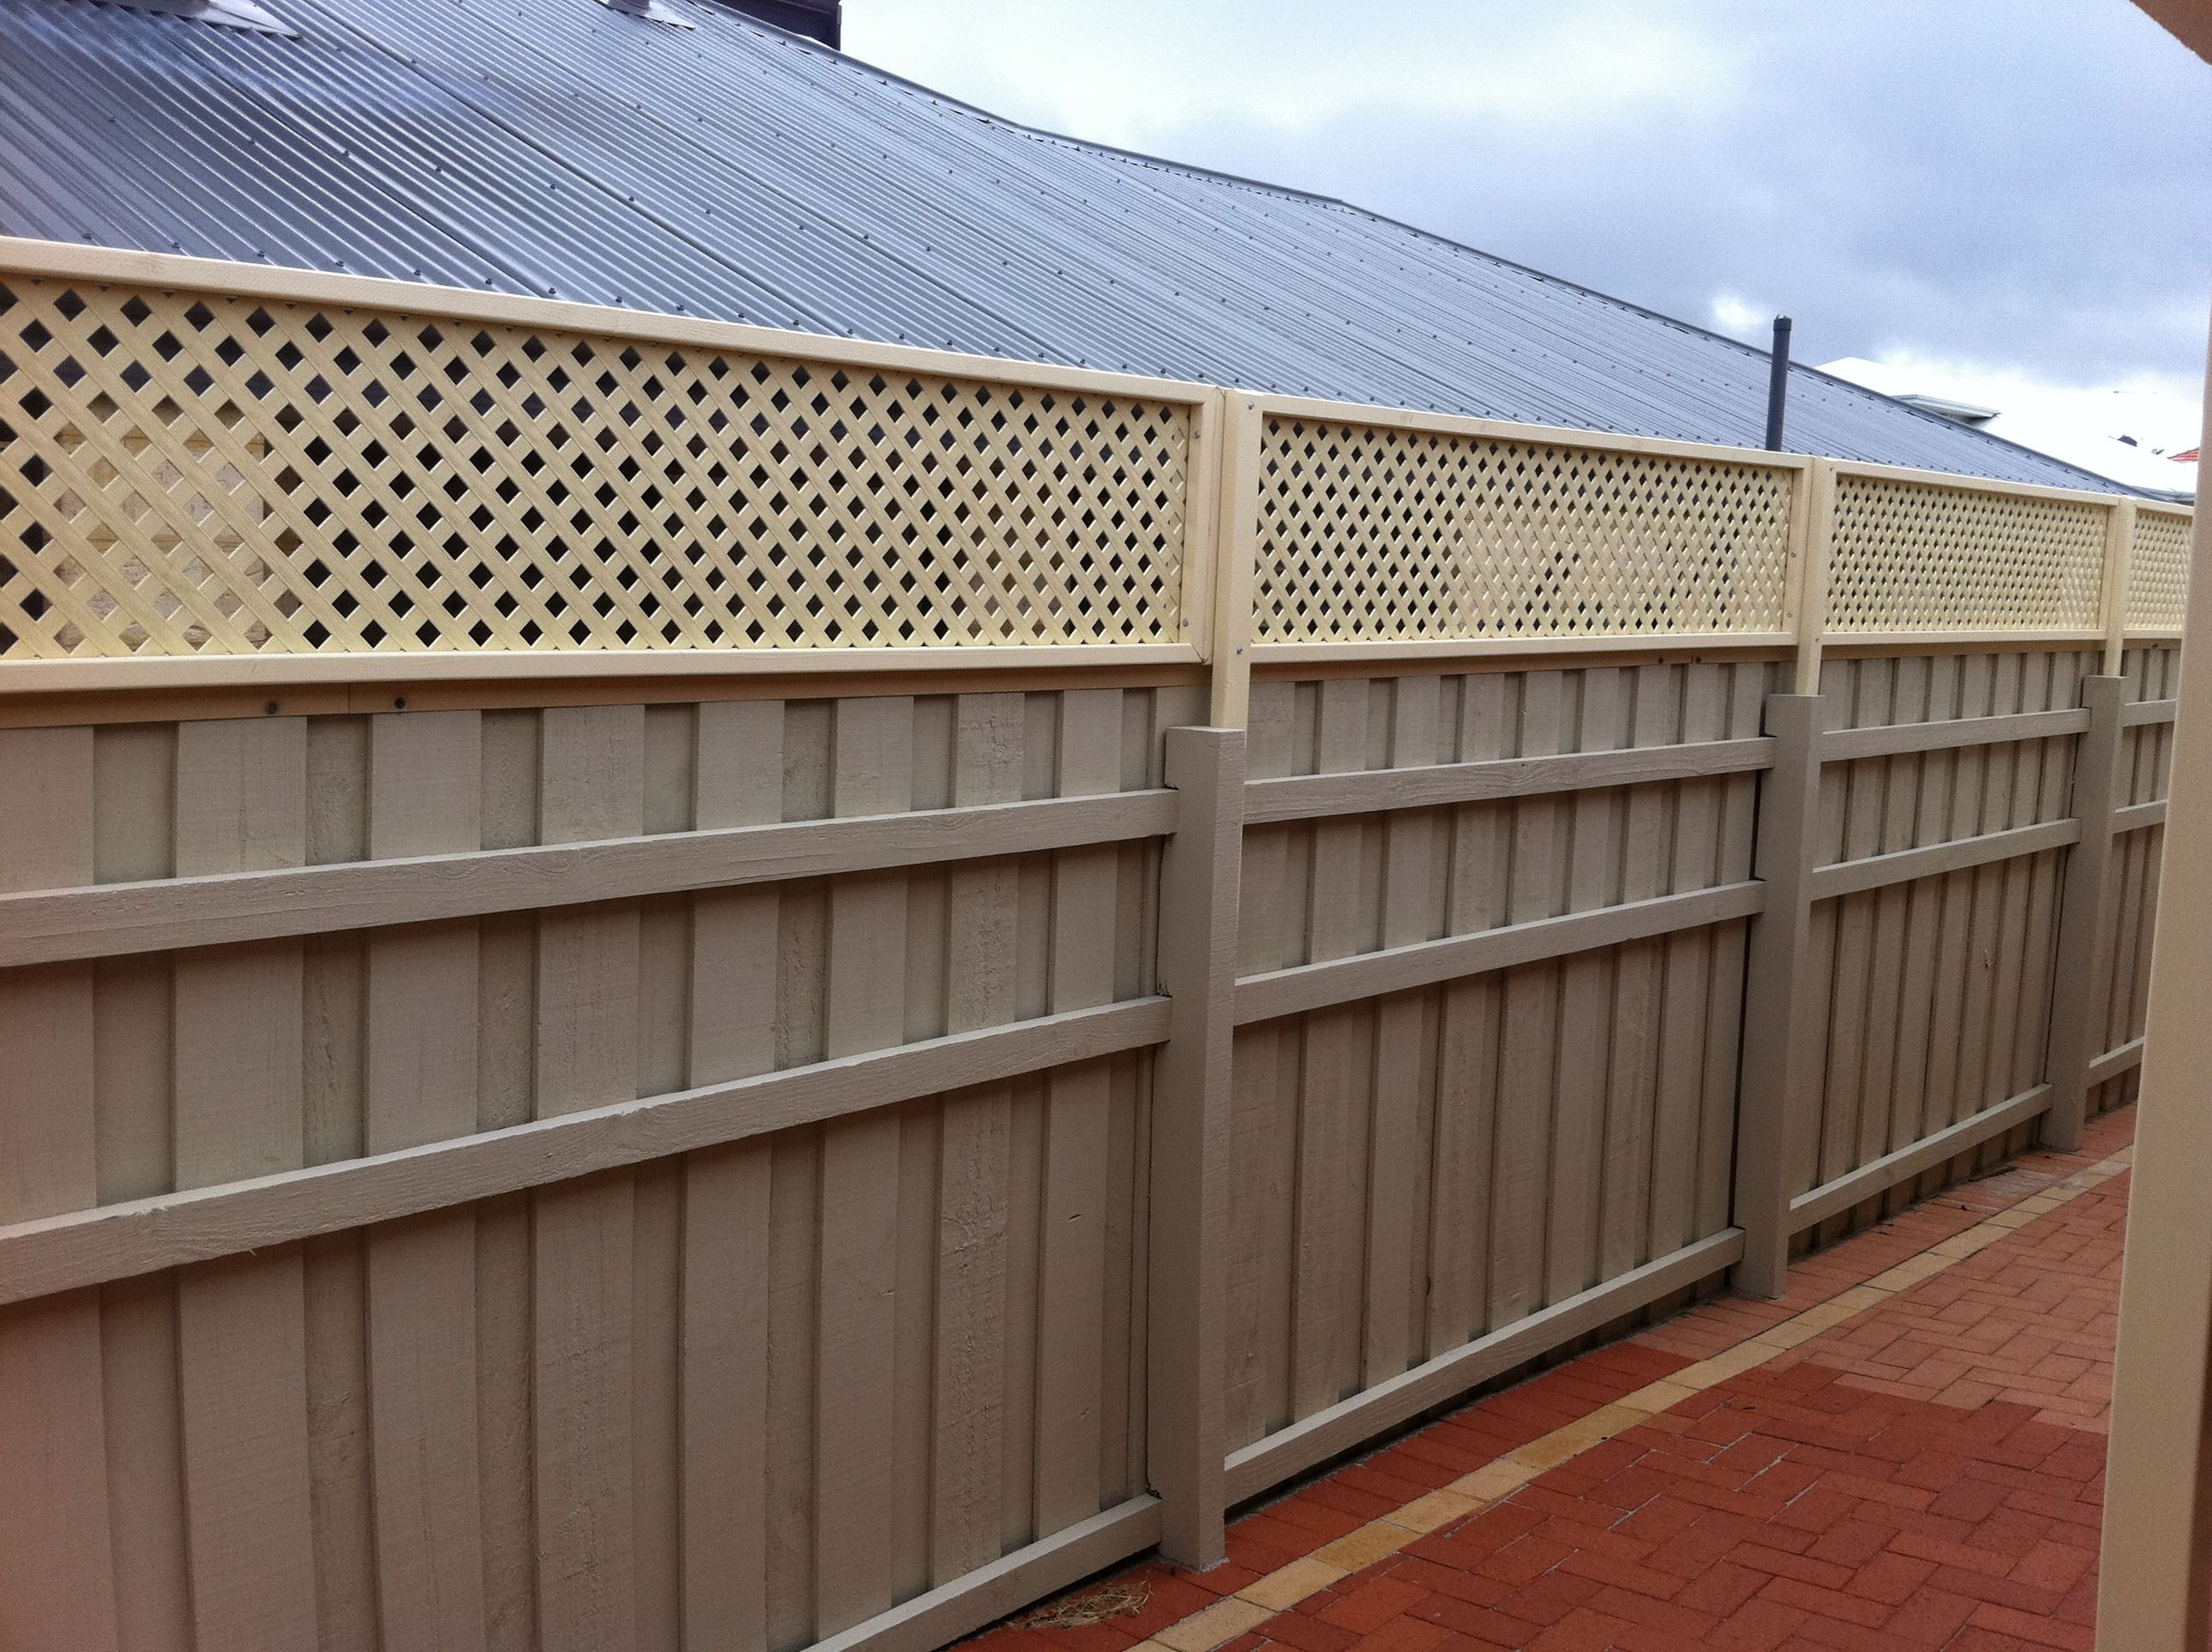 Fence Extensions Perth Lattice Fence Extension Perth Backyard Fences Backyard Privacy Lattice Fence